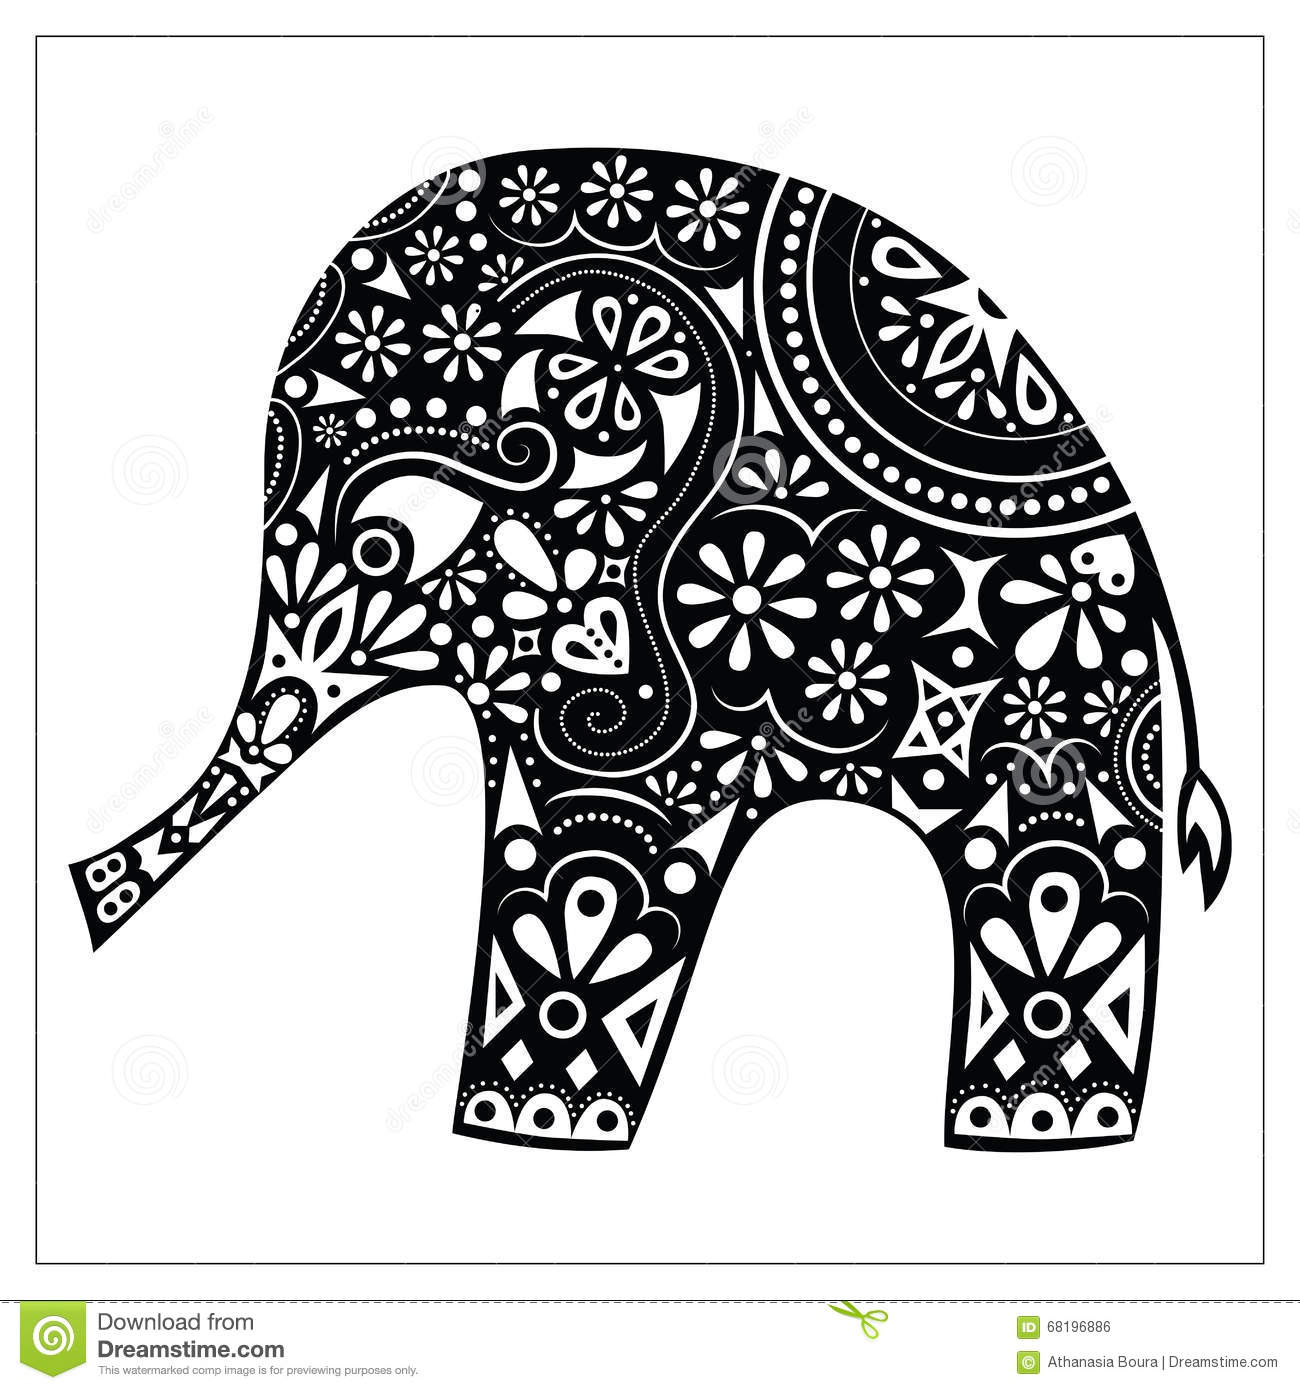 Holli Festival Decoration On Elephant Coloring Page Exotic Animal Black And White Doodle